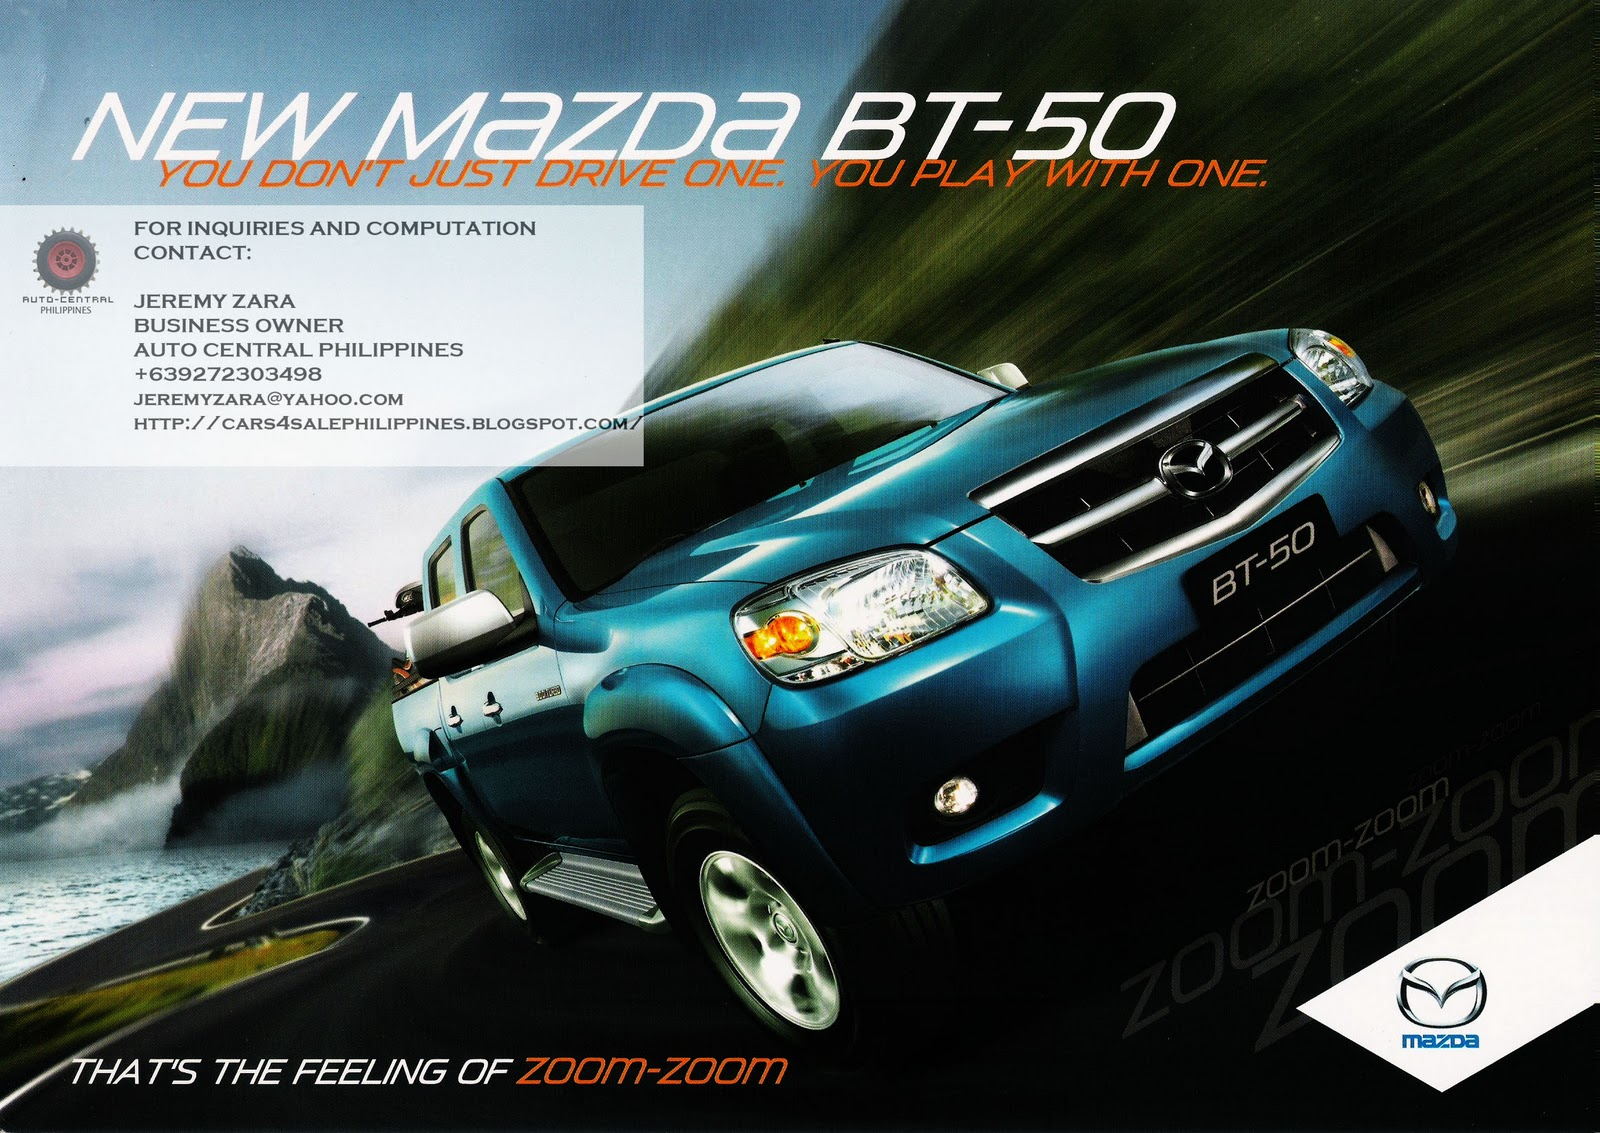 Cars For Sale Philippines Brand New: Brand New Cars For Sale: BRAND NEW MAZDA BT 500